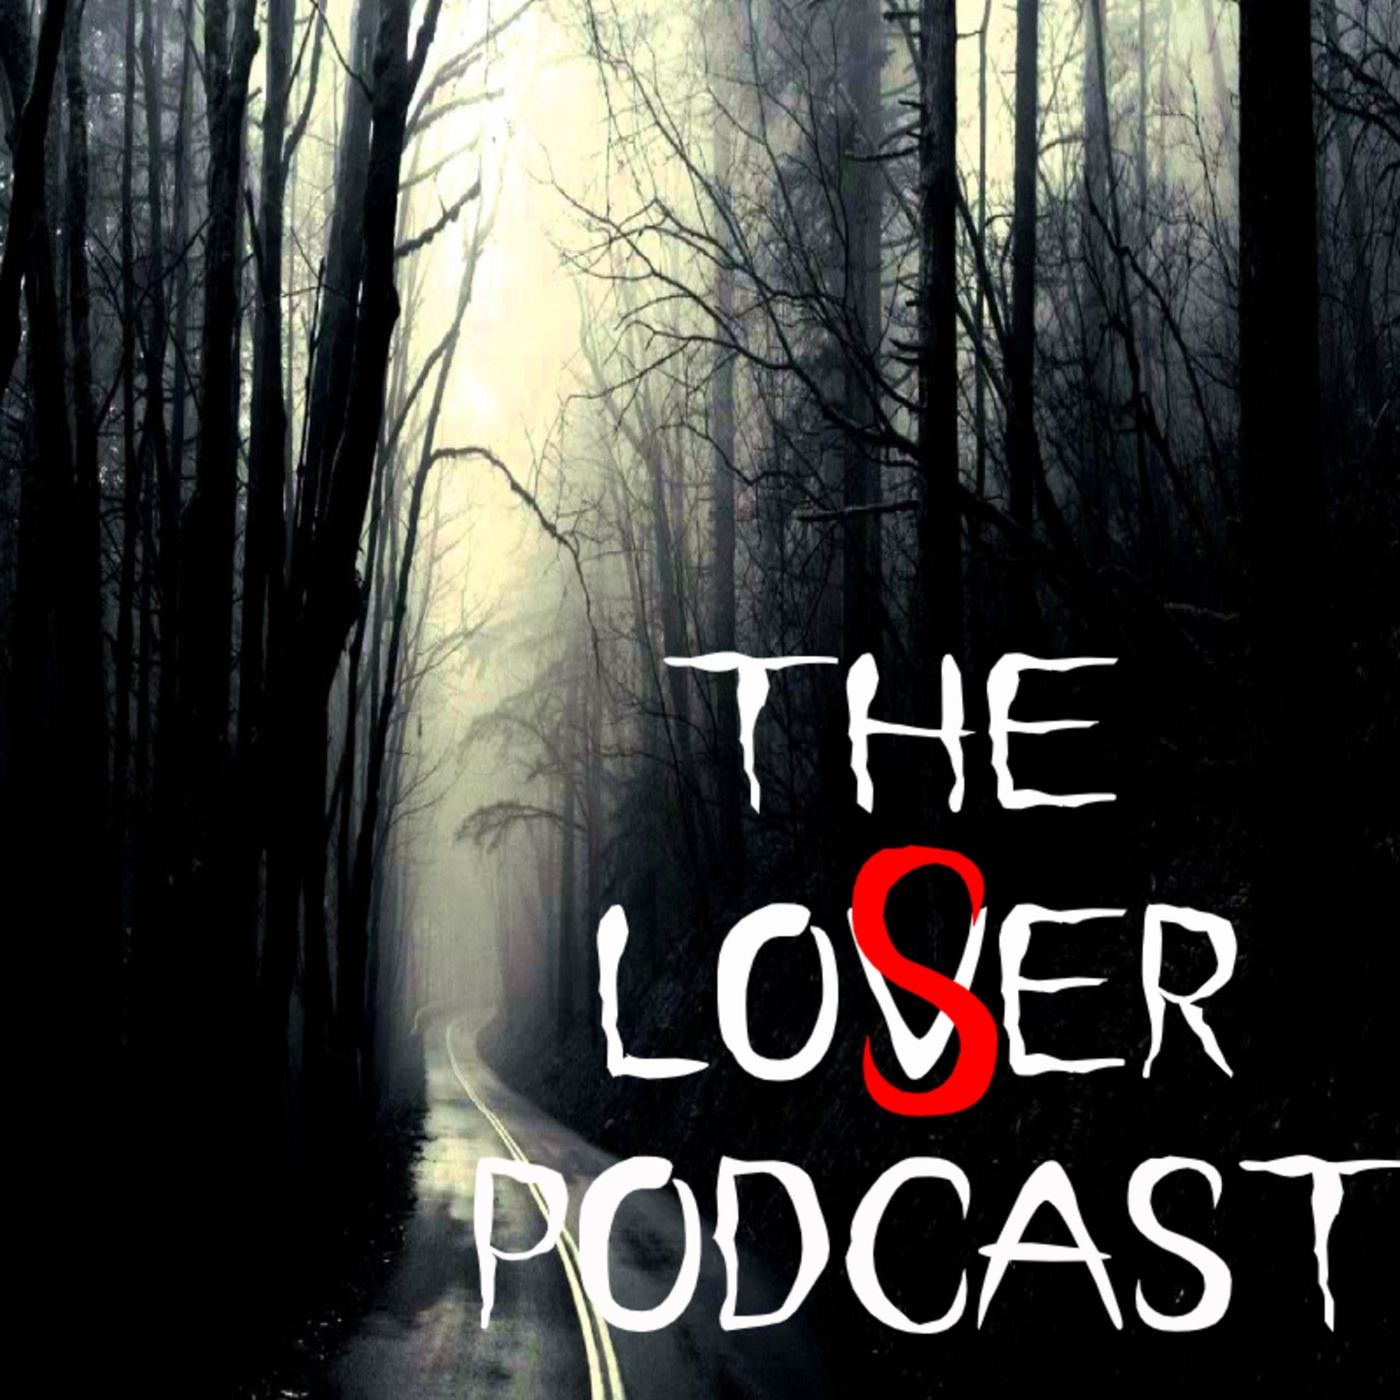 The Loser Podcast